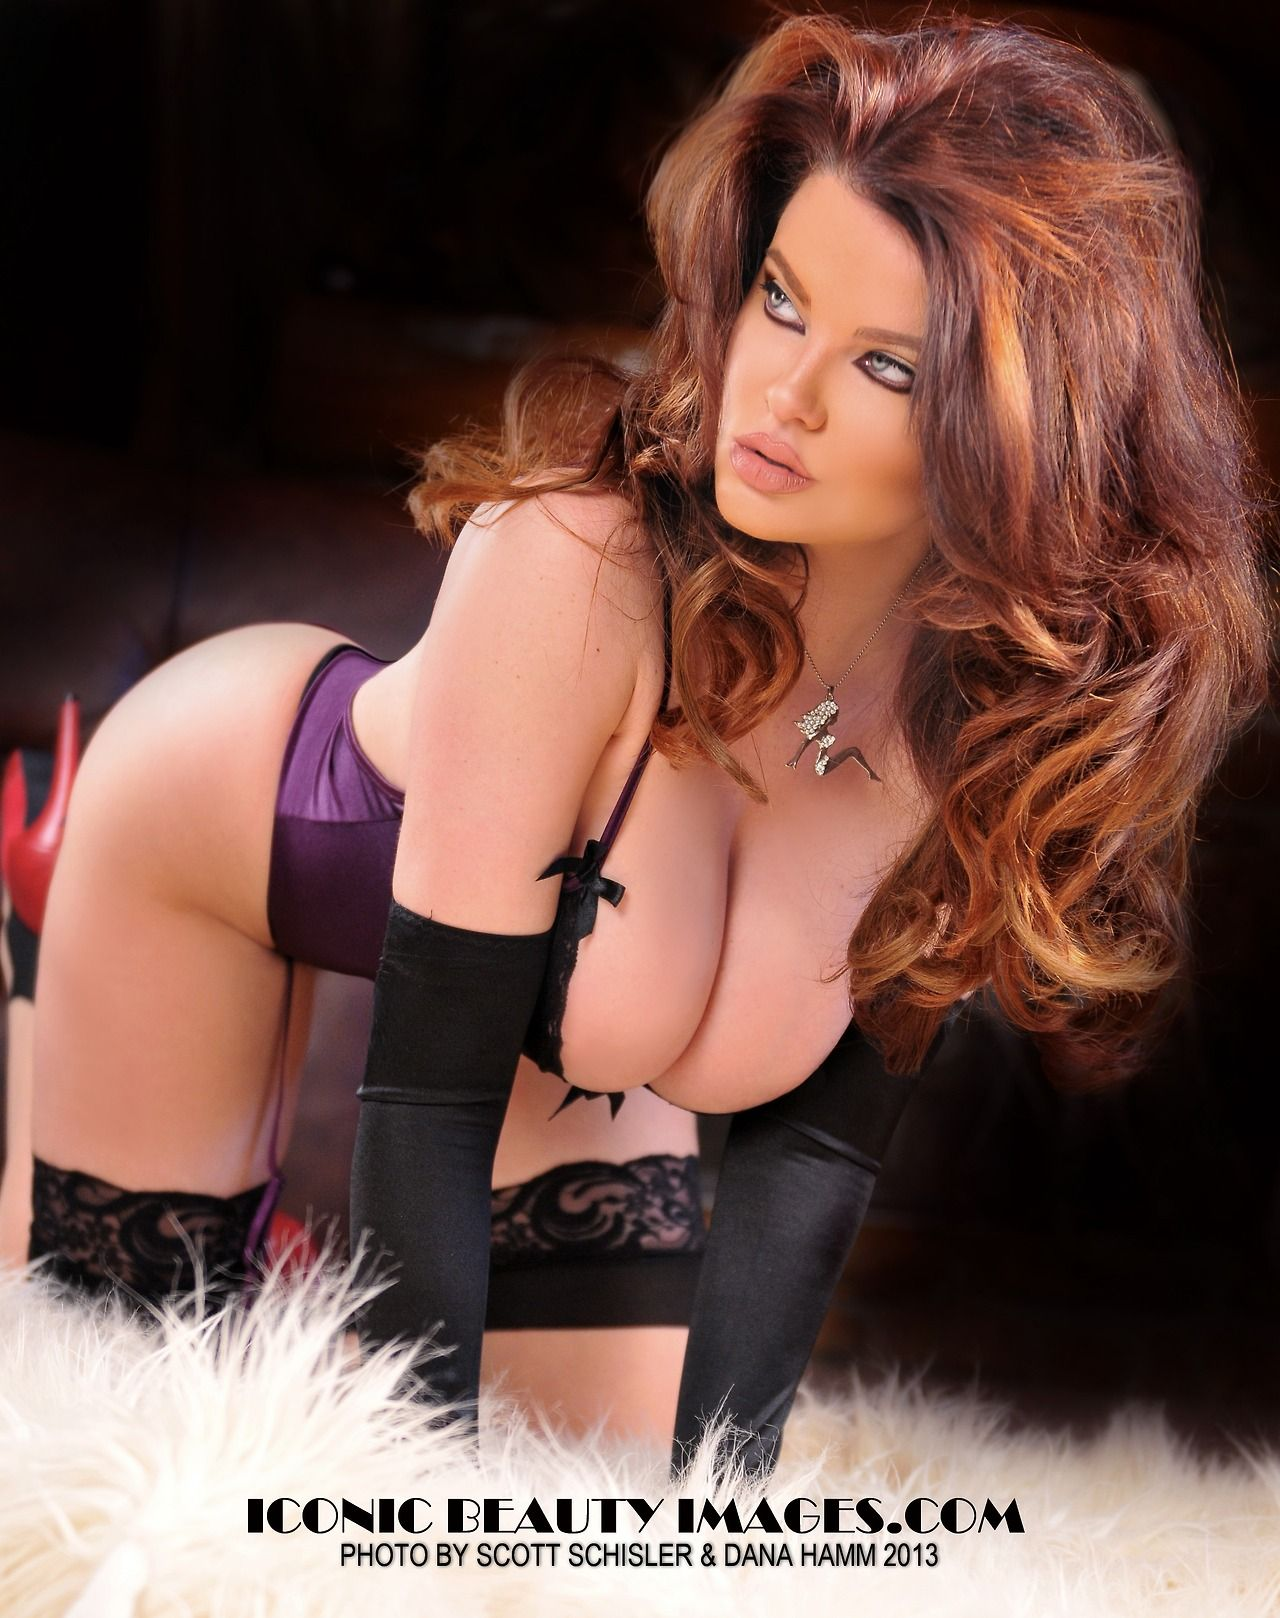 Awesome Curves On Hot Babes Happy Pining Everyone Enjoy